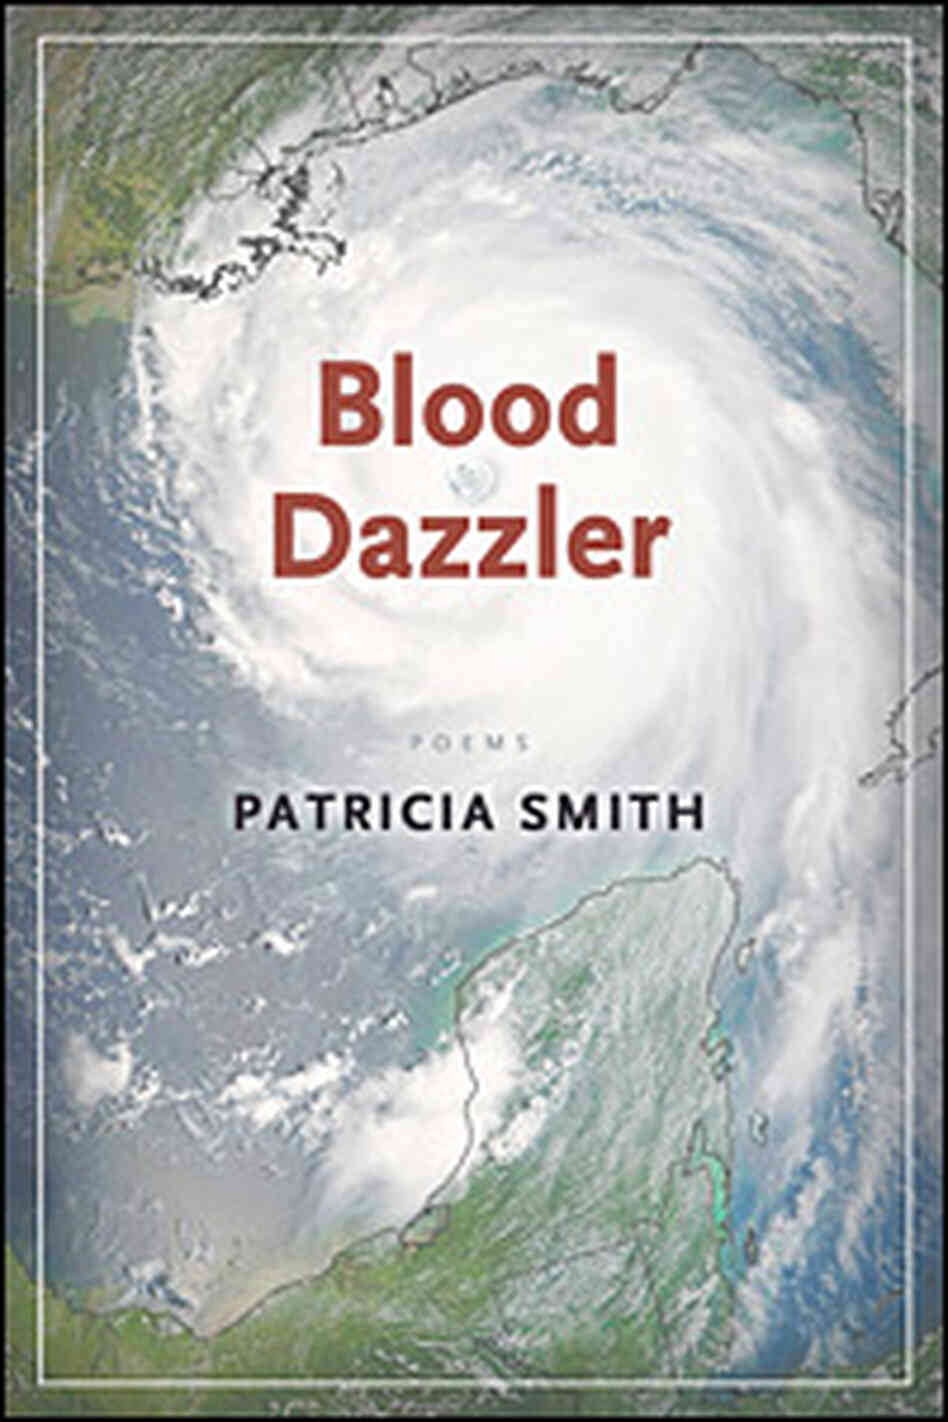 Patricia Smith's 'Blood Dazzler'